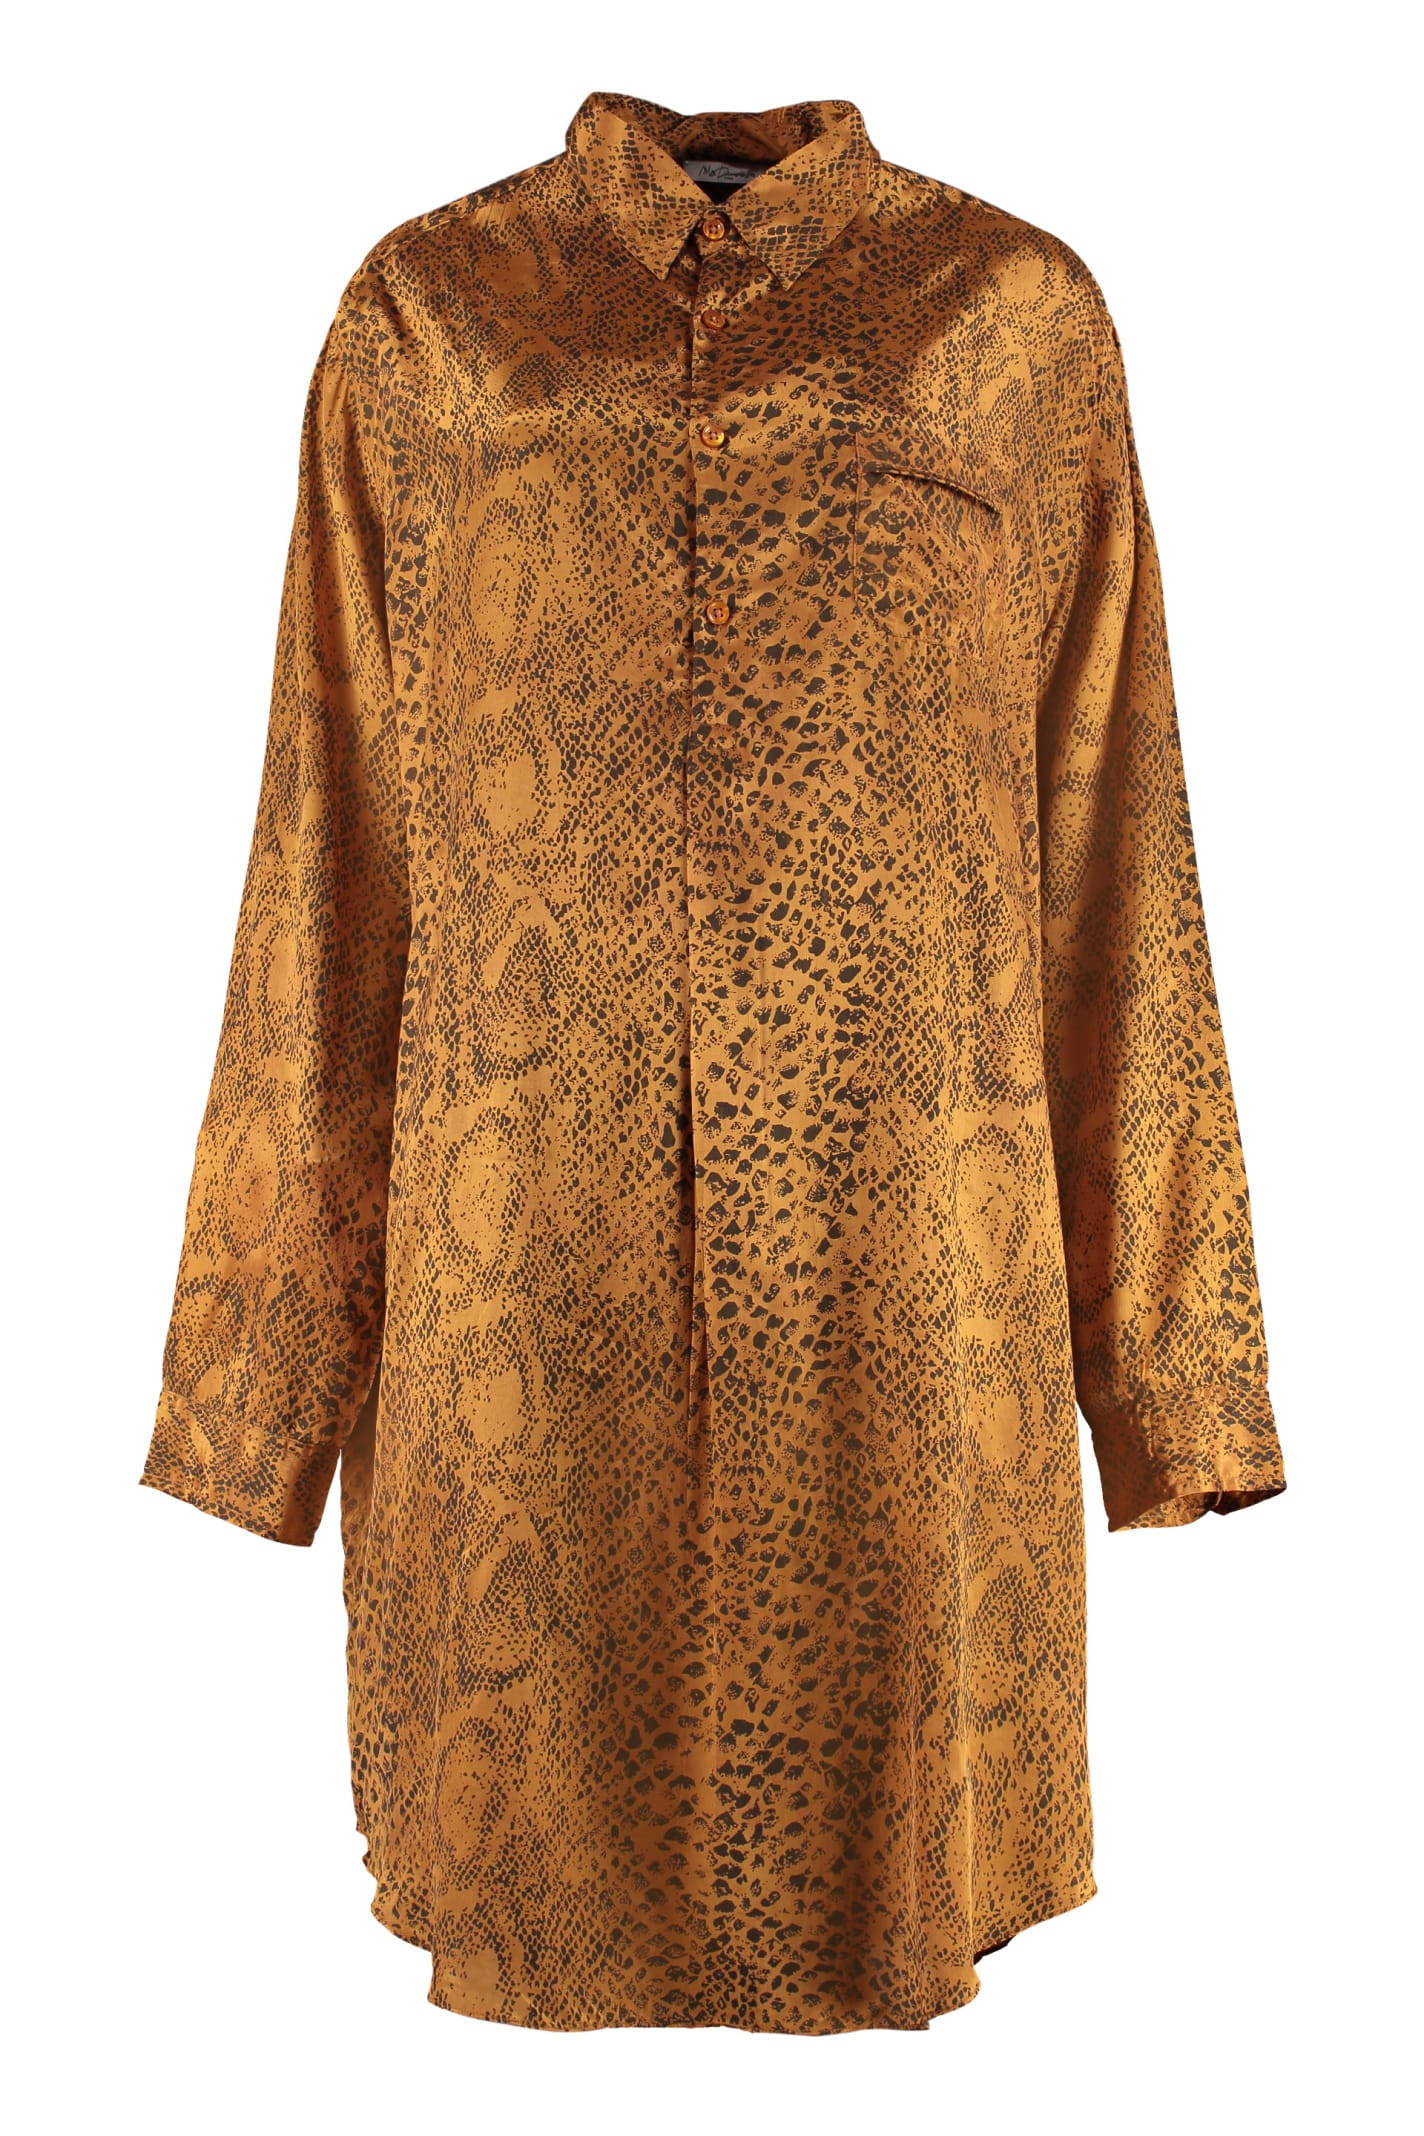 Mes Demoiselles Kaa Printed Shirtdress